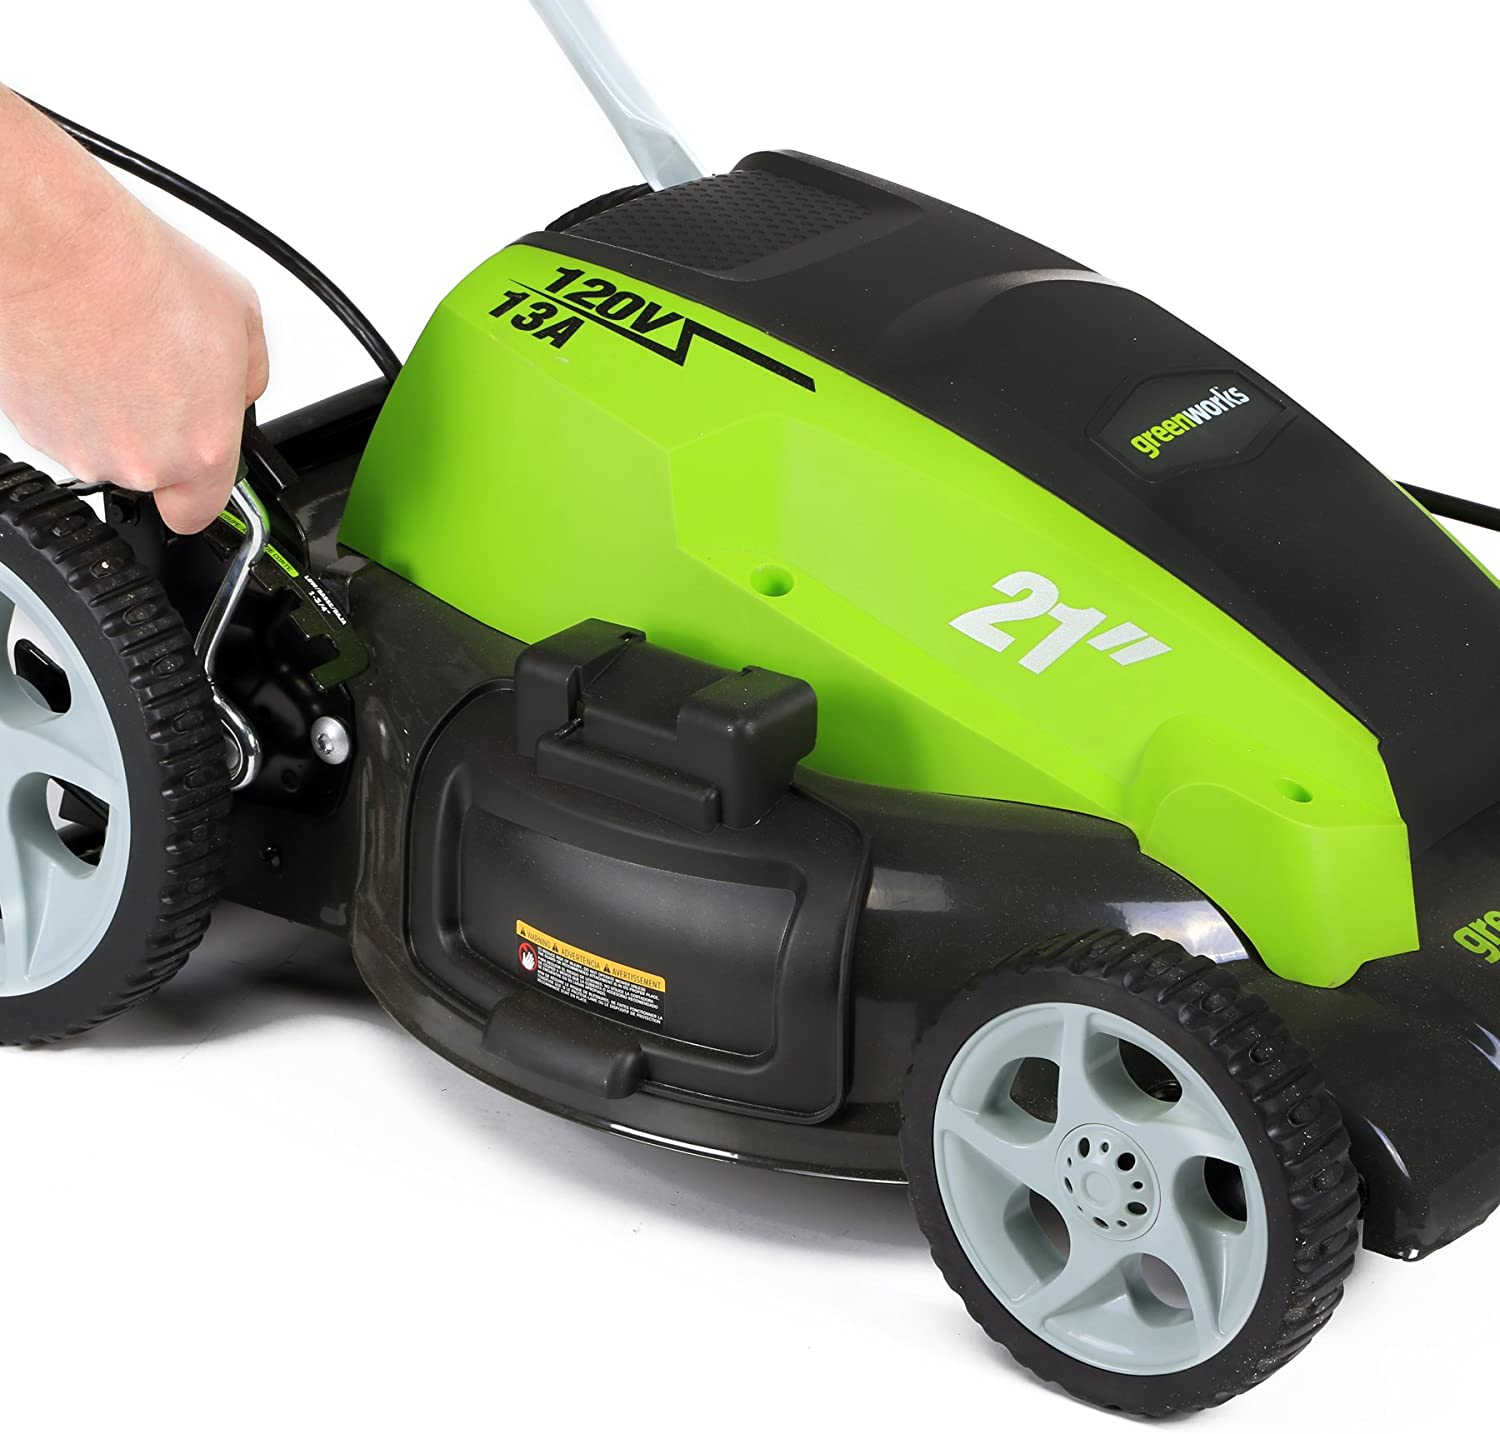 Greenworks Electric Lawn Mower Buying Guide